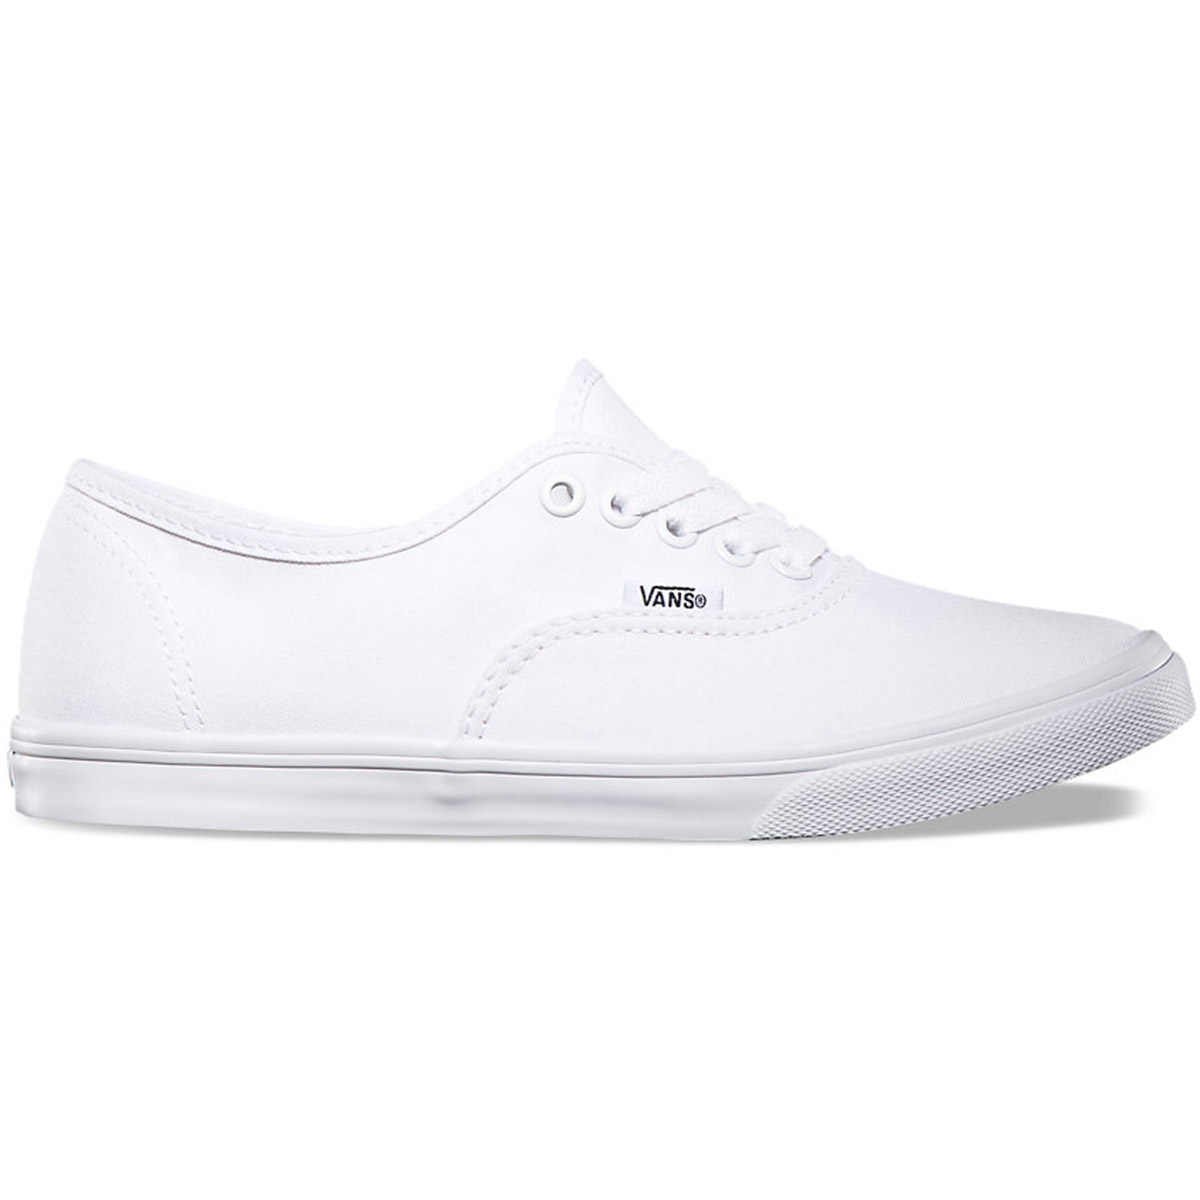 Vans Unisex Authentic Lo Pro Shoes - White, 10